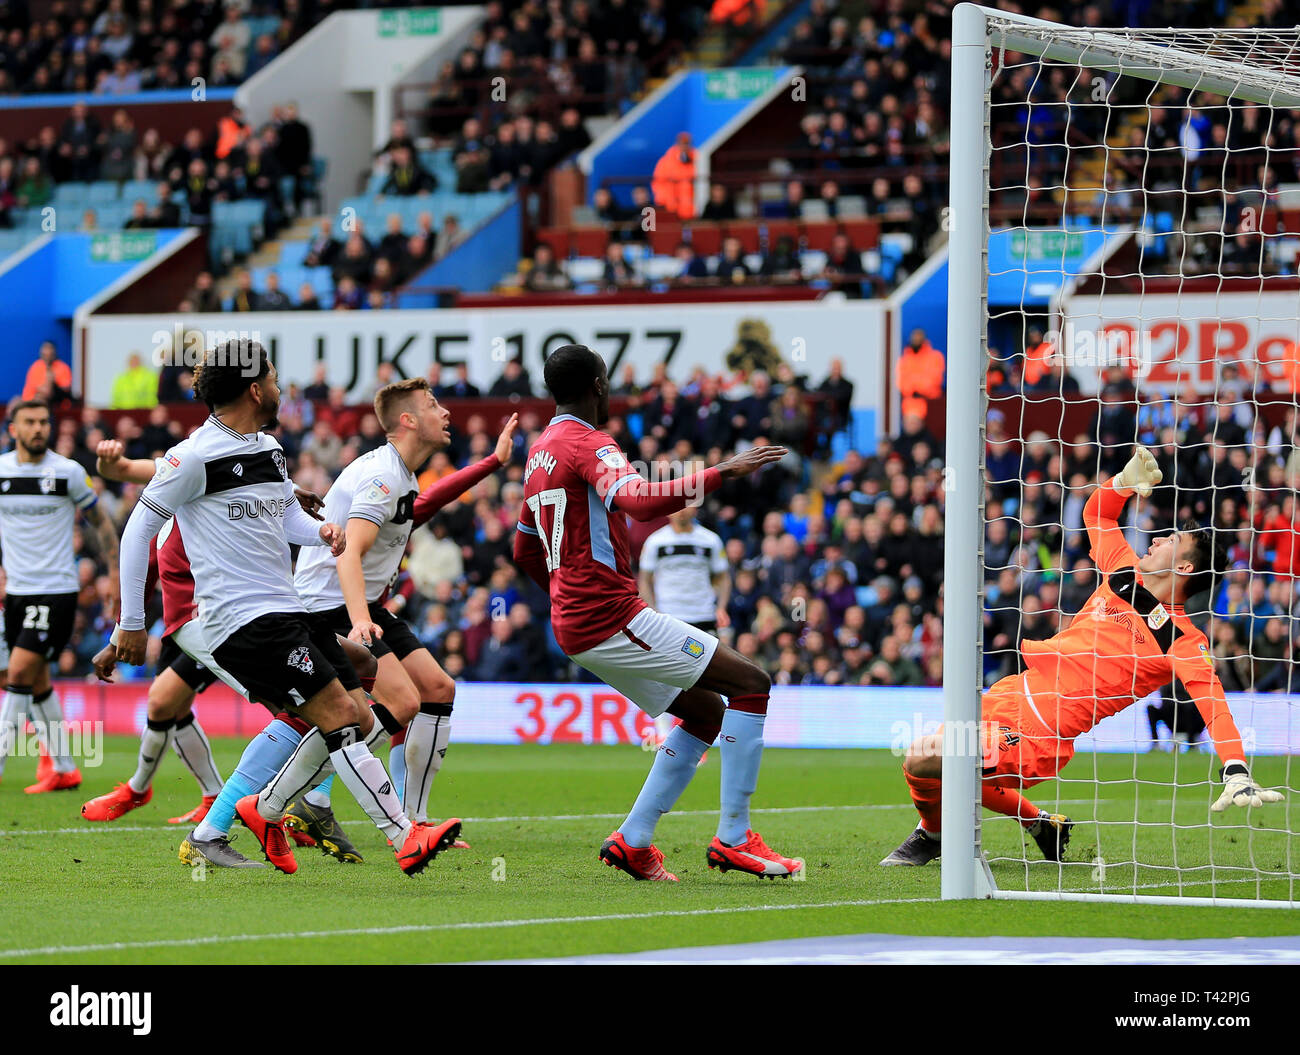 Birmingham, UK. 13th April 2019. Max O'leary of Bristol City saves at point blank range from Conor Hourihane of Aston Villa during the Skybet Championship match between Aston Villa and Bristol City Credit: Paul Roberts/OneUpTop/Alamy Live News - Stock Image